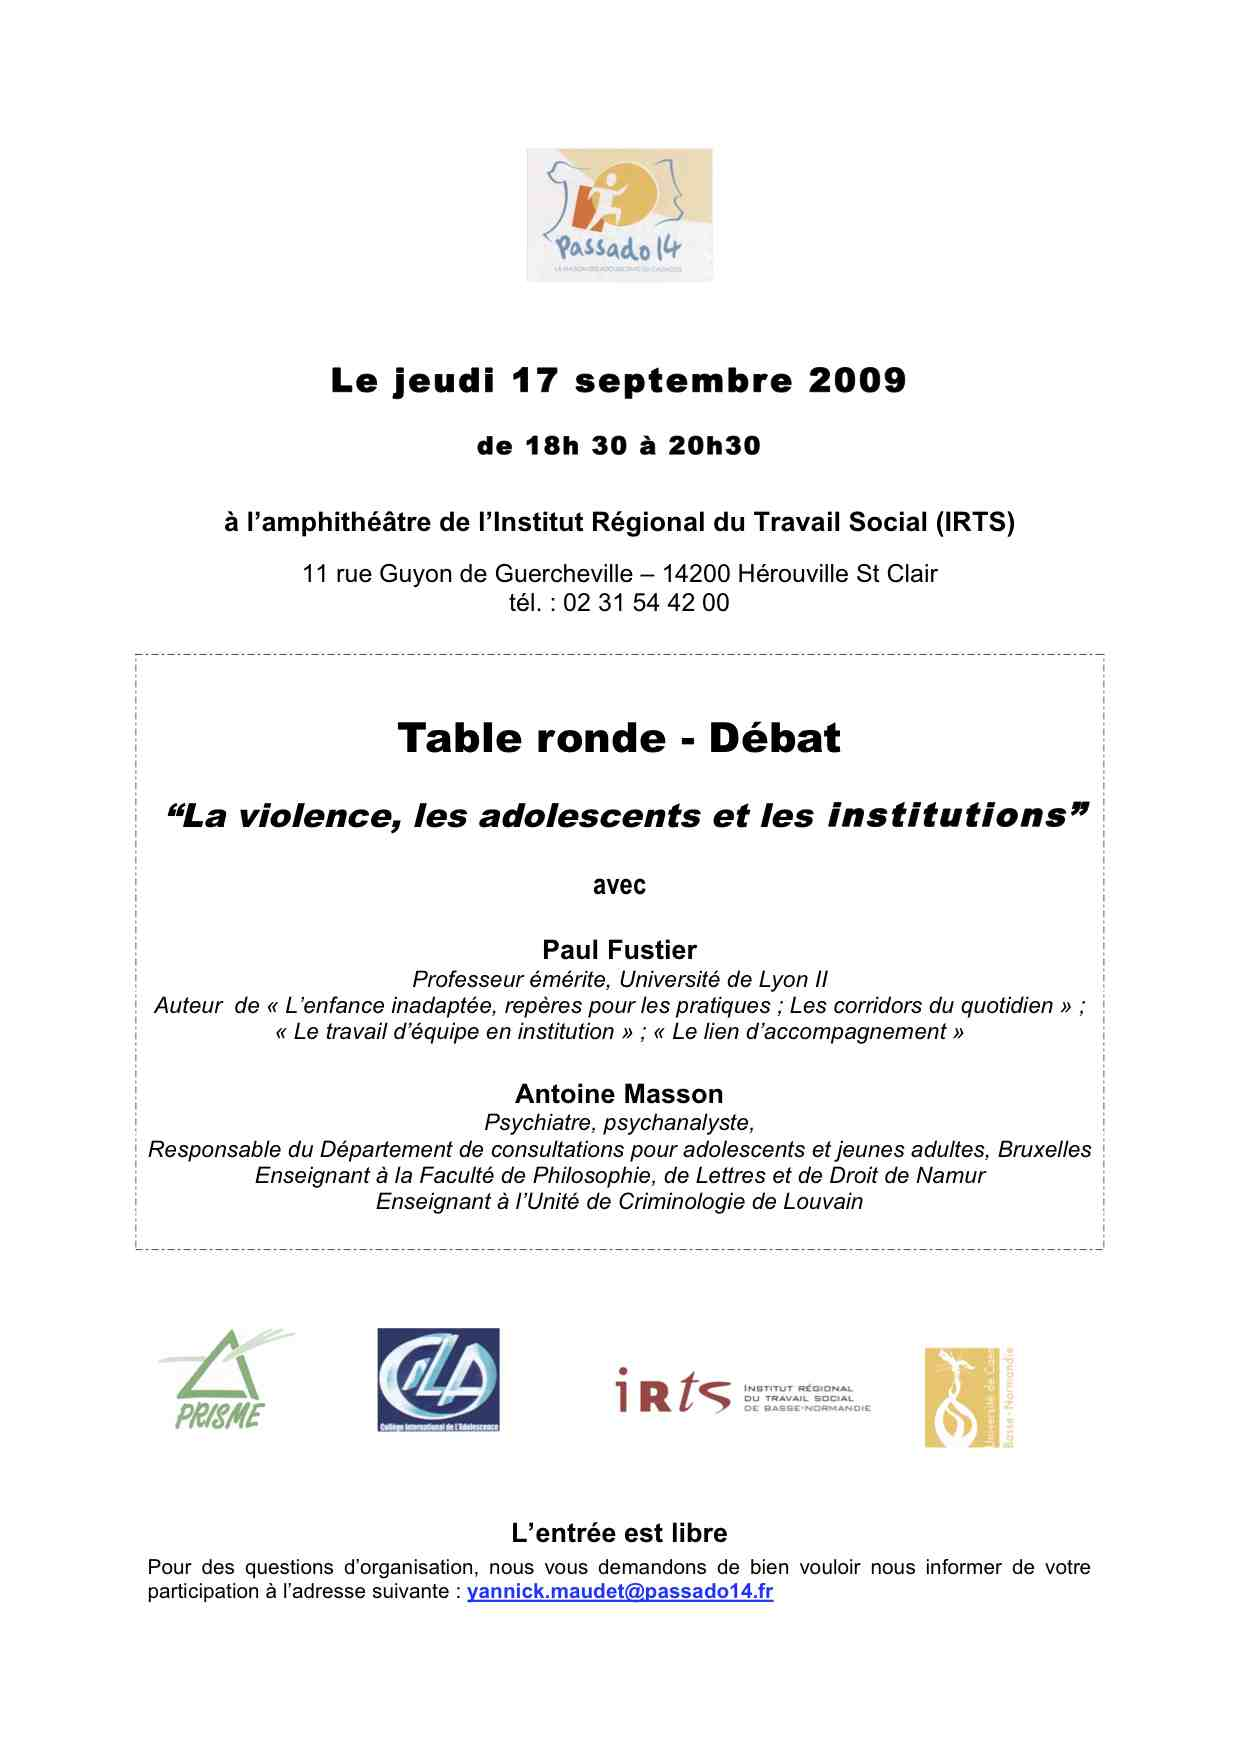 2009-09-17-table_ronde